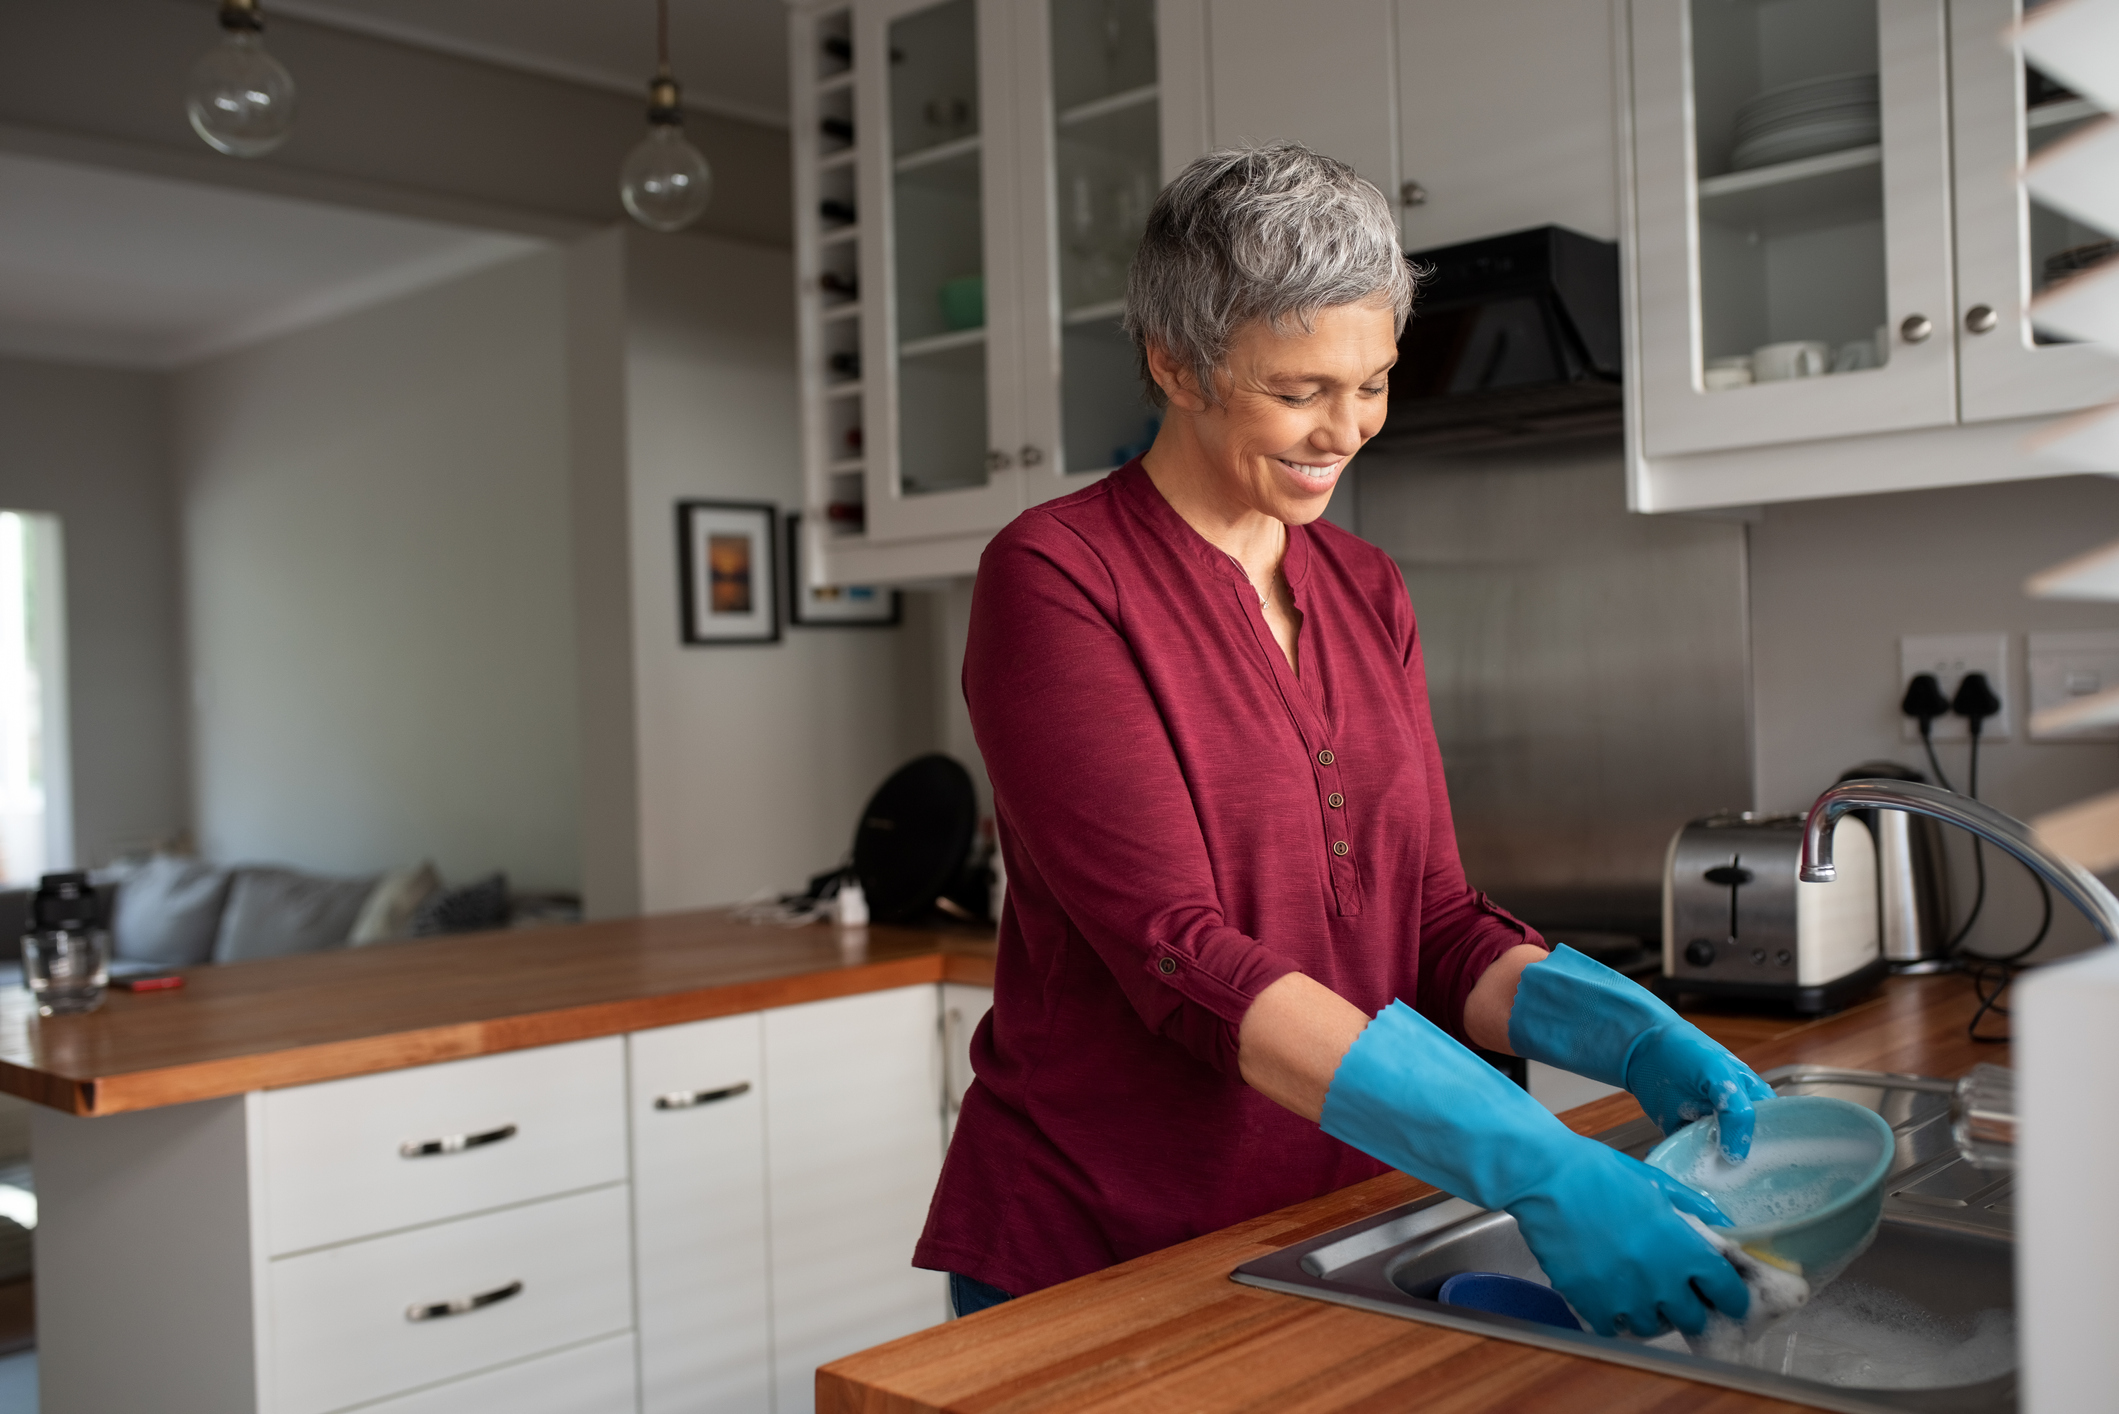 Senior woman washing dishes in her kitchen. Cheerful mature housewife in kitchen. Beautiful smiling woman with gray hair and blue gloves washing bowl in washbasin at home.